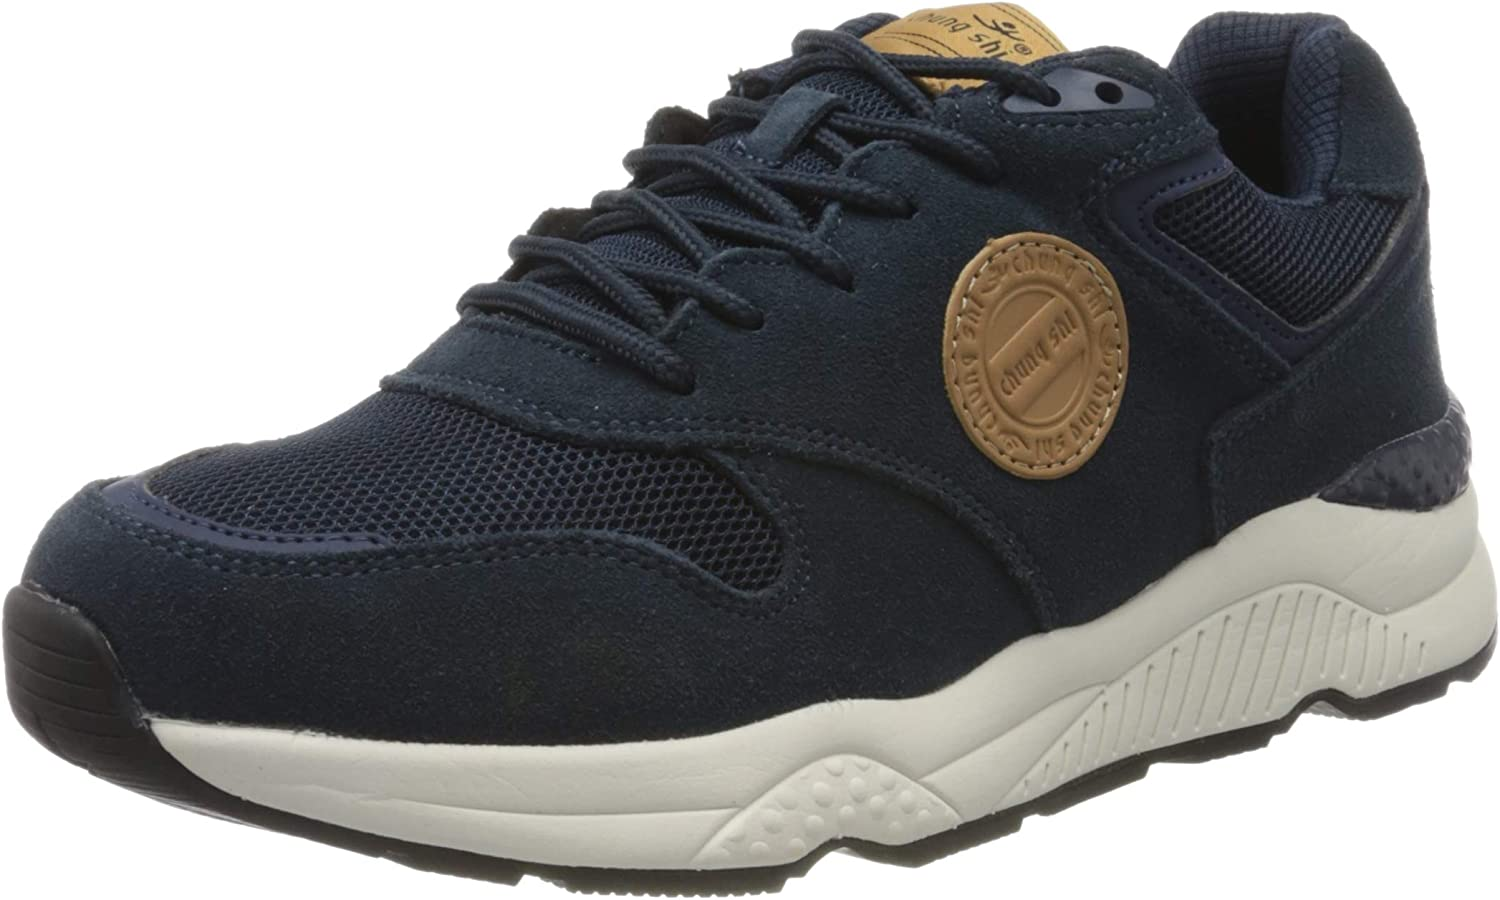 Chung -Shi Women's Duxfree Max 50% OFF Shoes Vancouver Max 73% OFF Low Lace-up